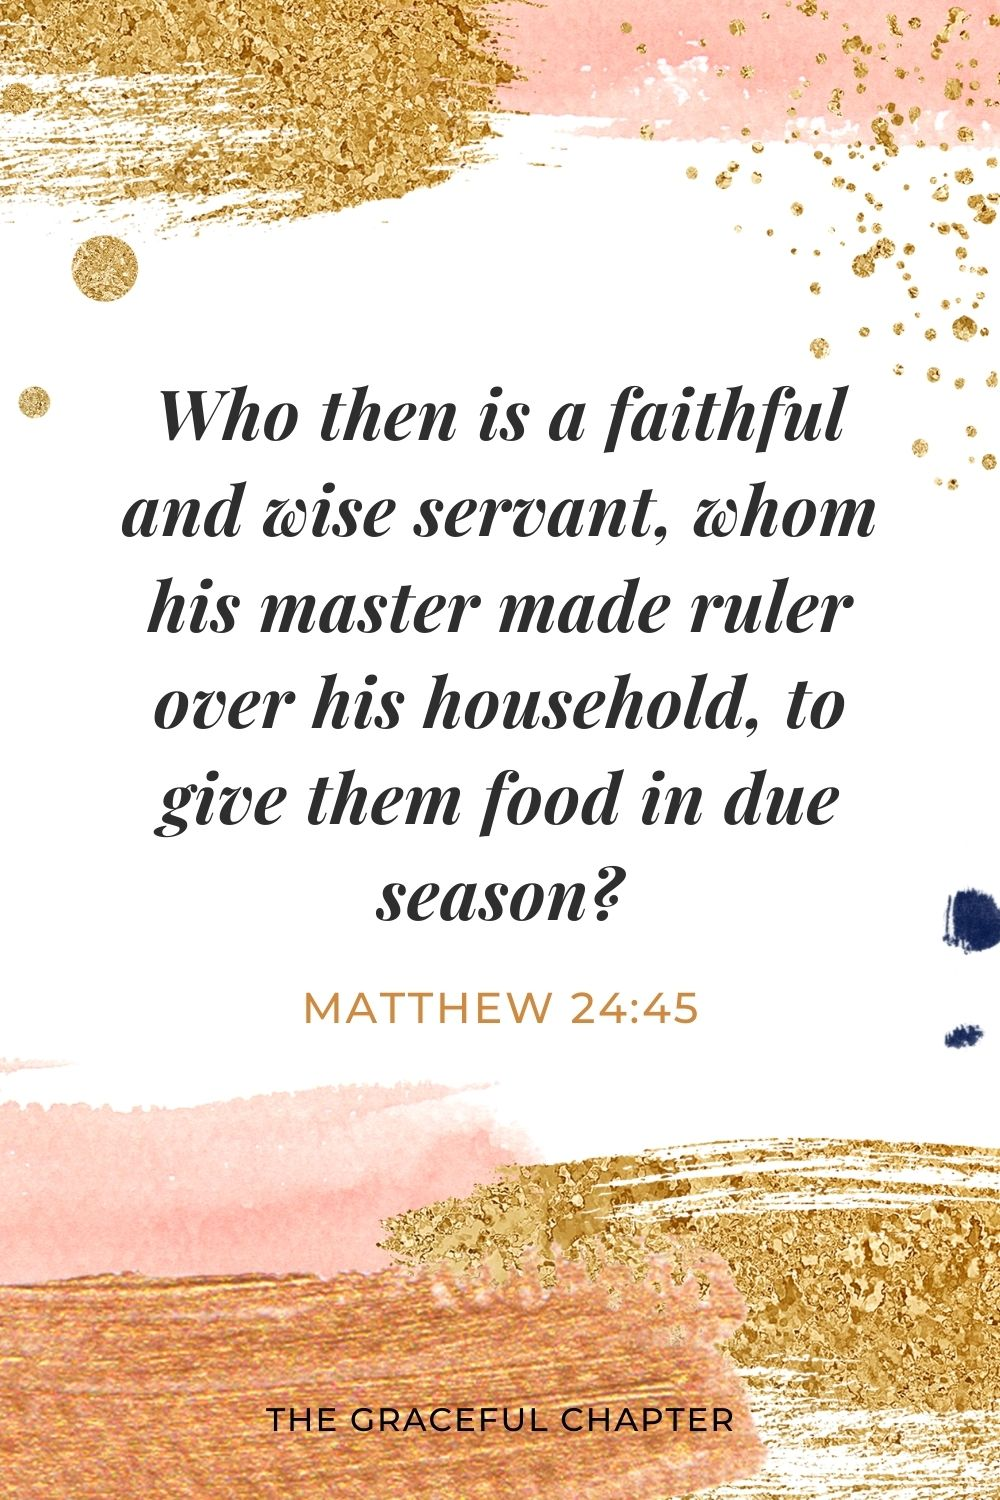 Who then is a faithful and wise servant, whom his master made ruler over his household, to give them food in due season? Matthew 24:45